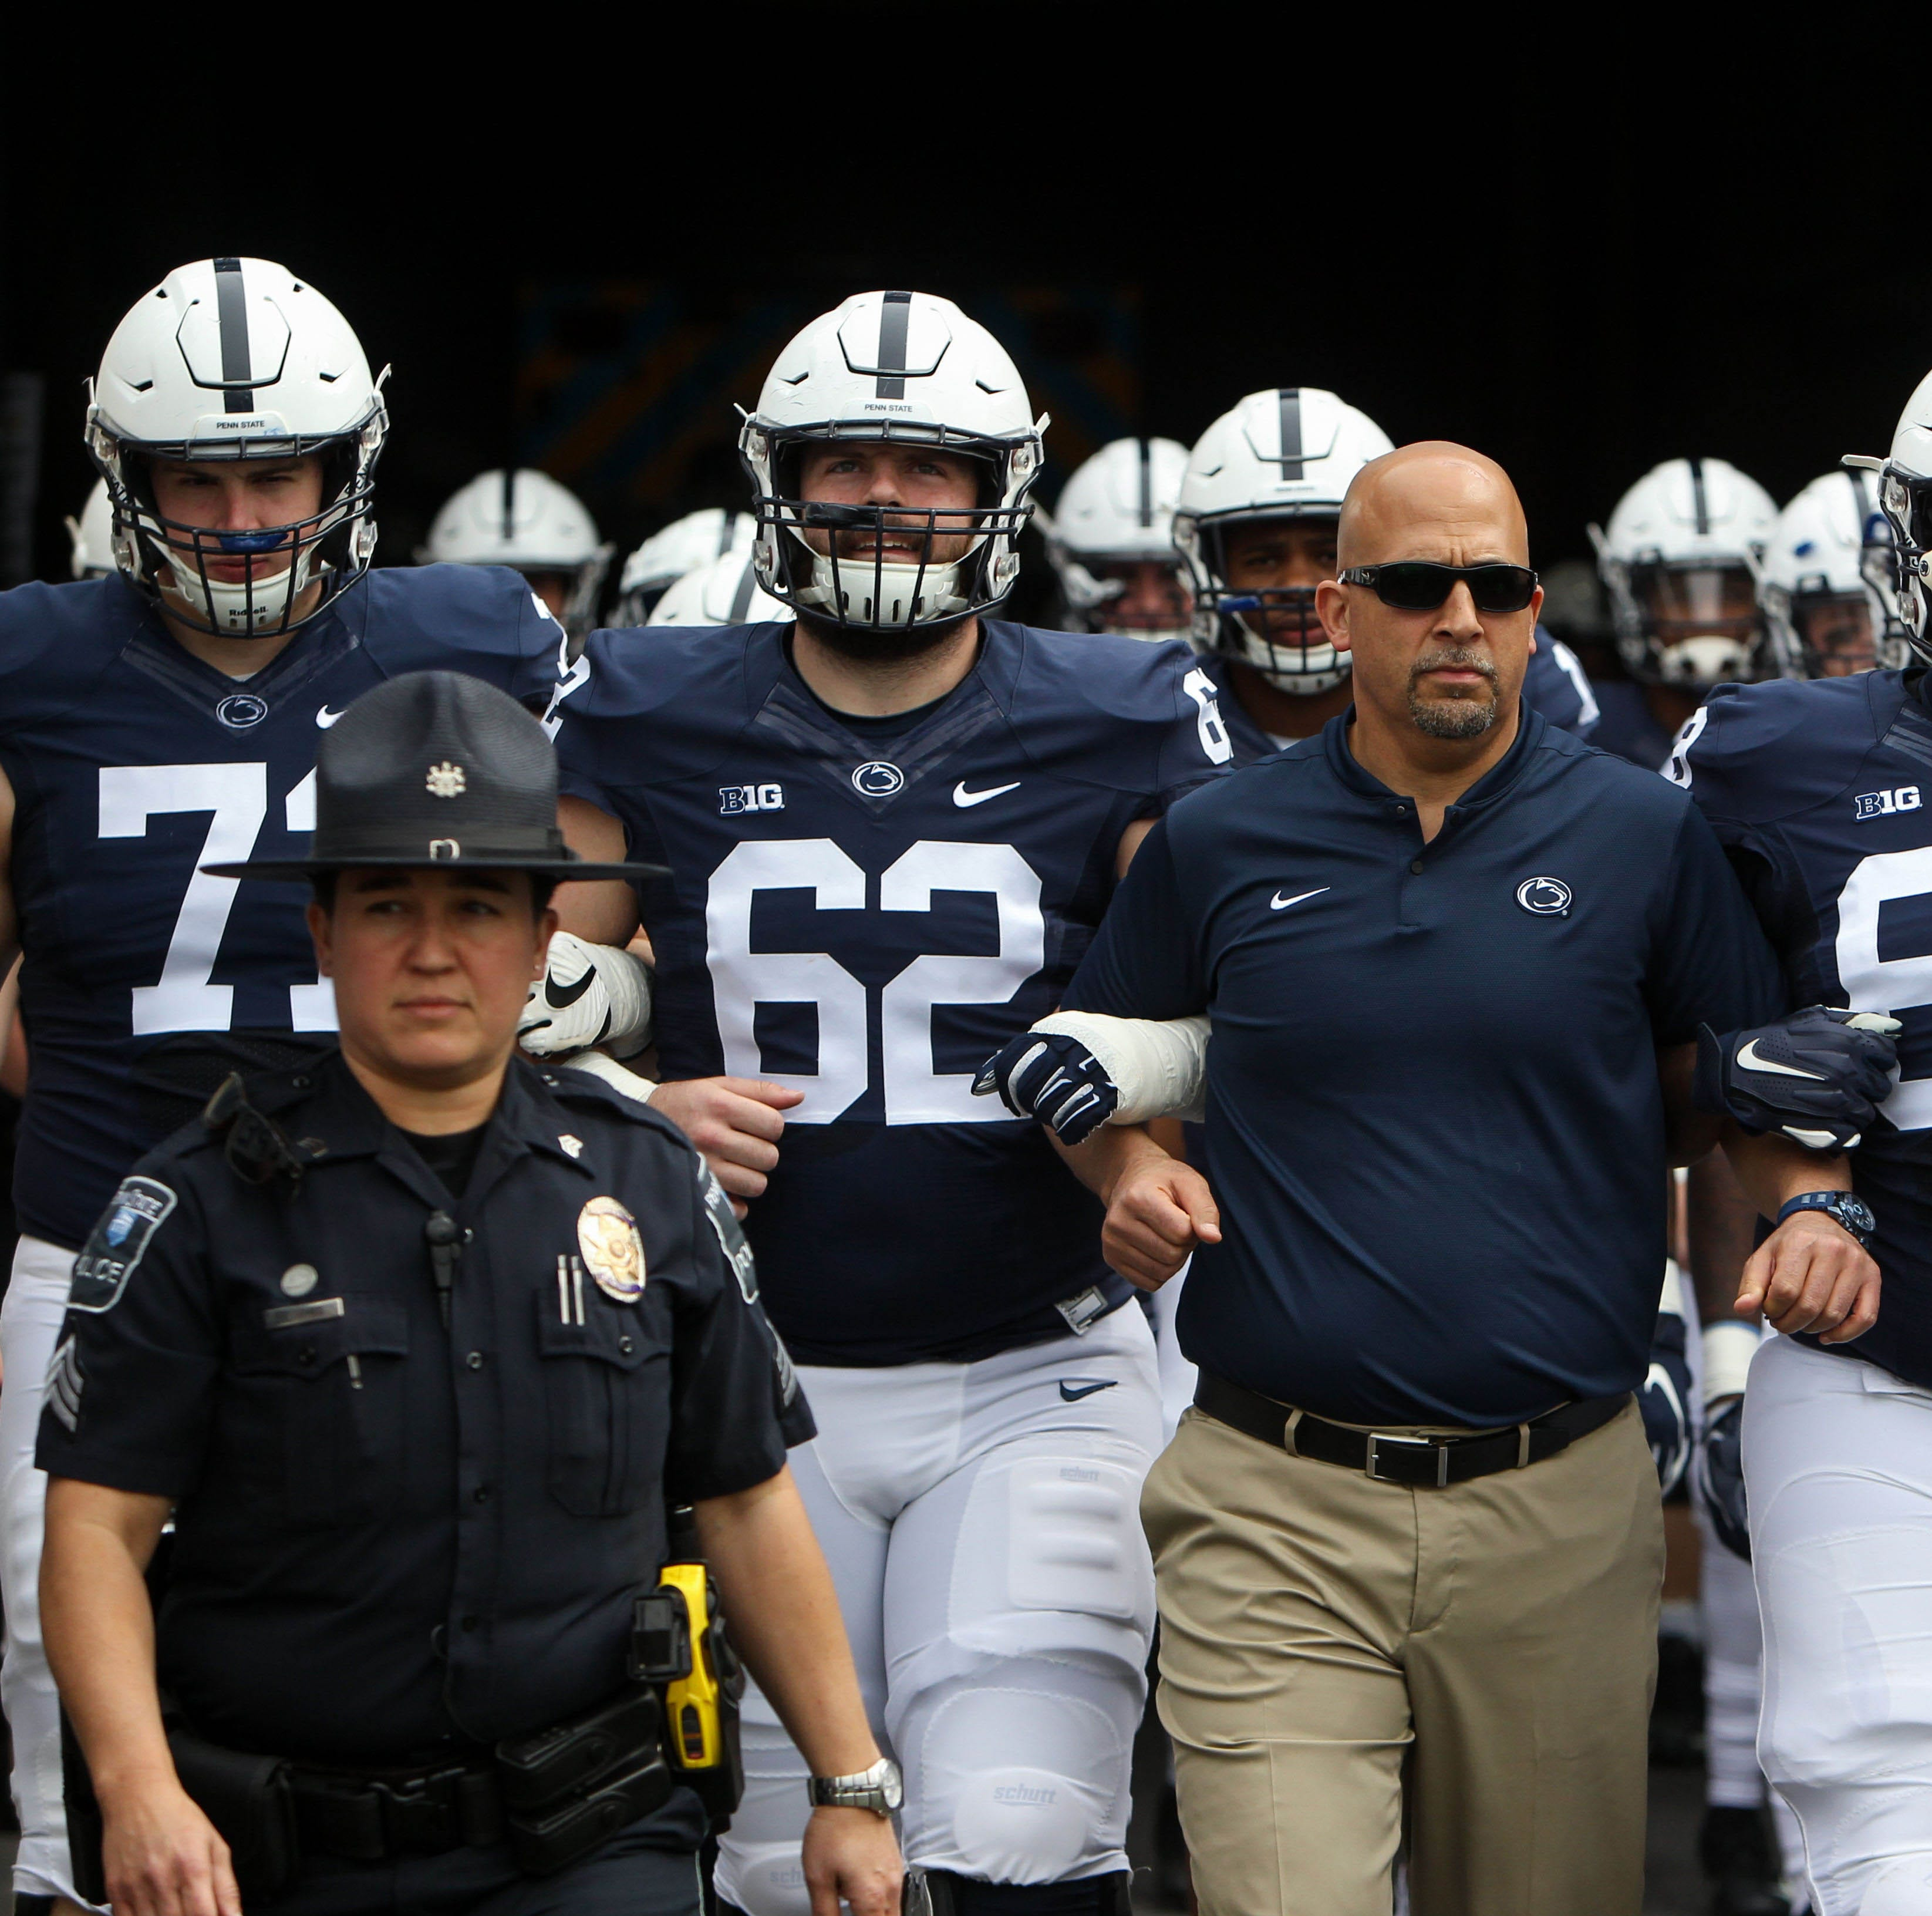 At Penn State's Blue-White Game, walk-on receiver awarded scholarship on the spot